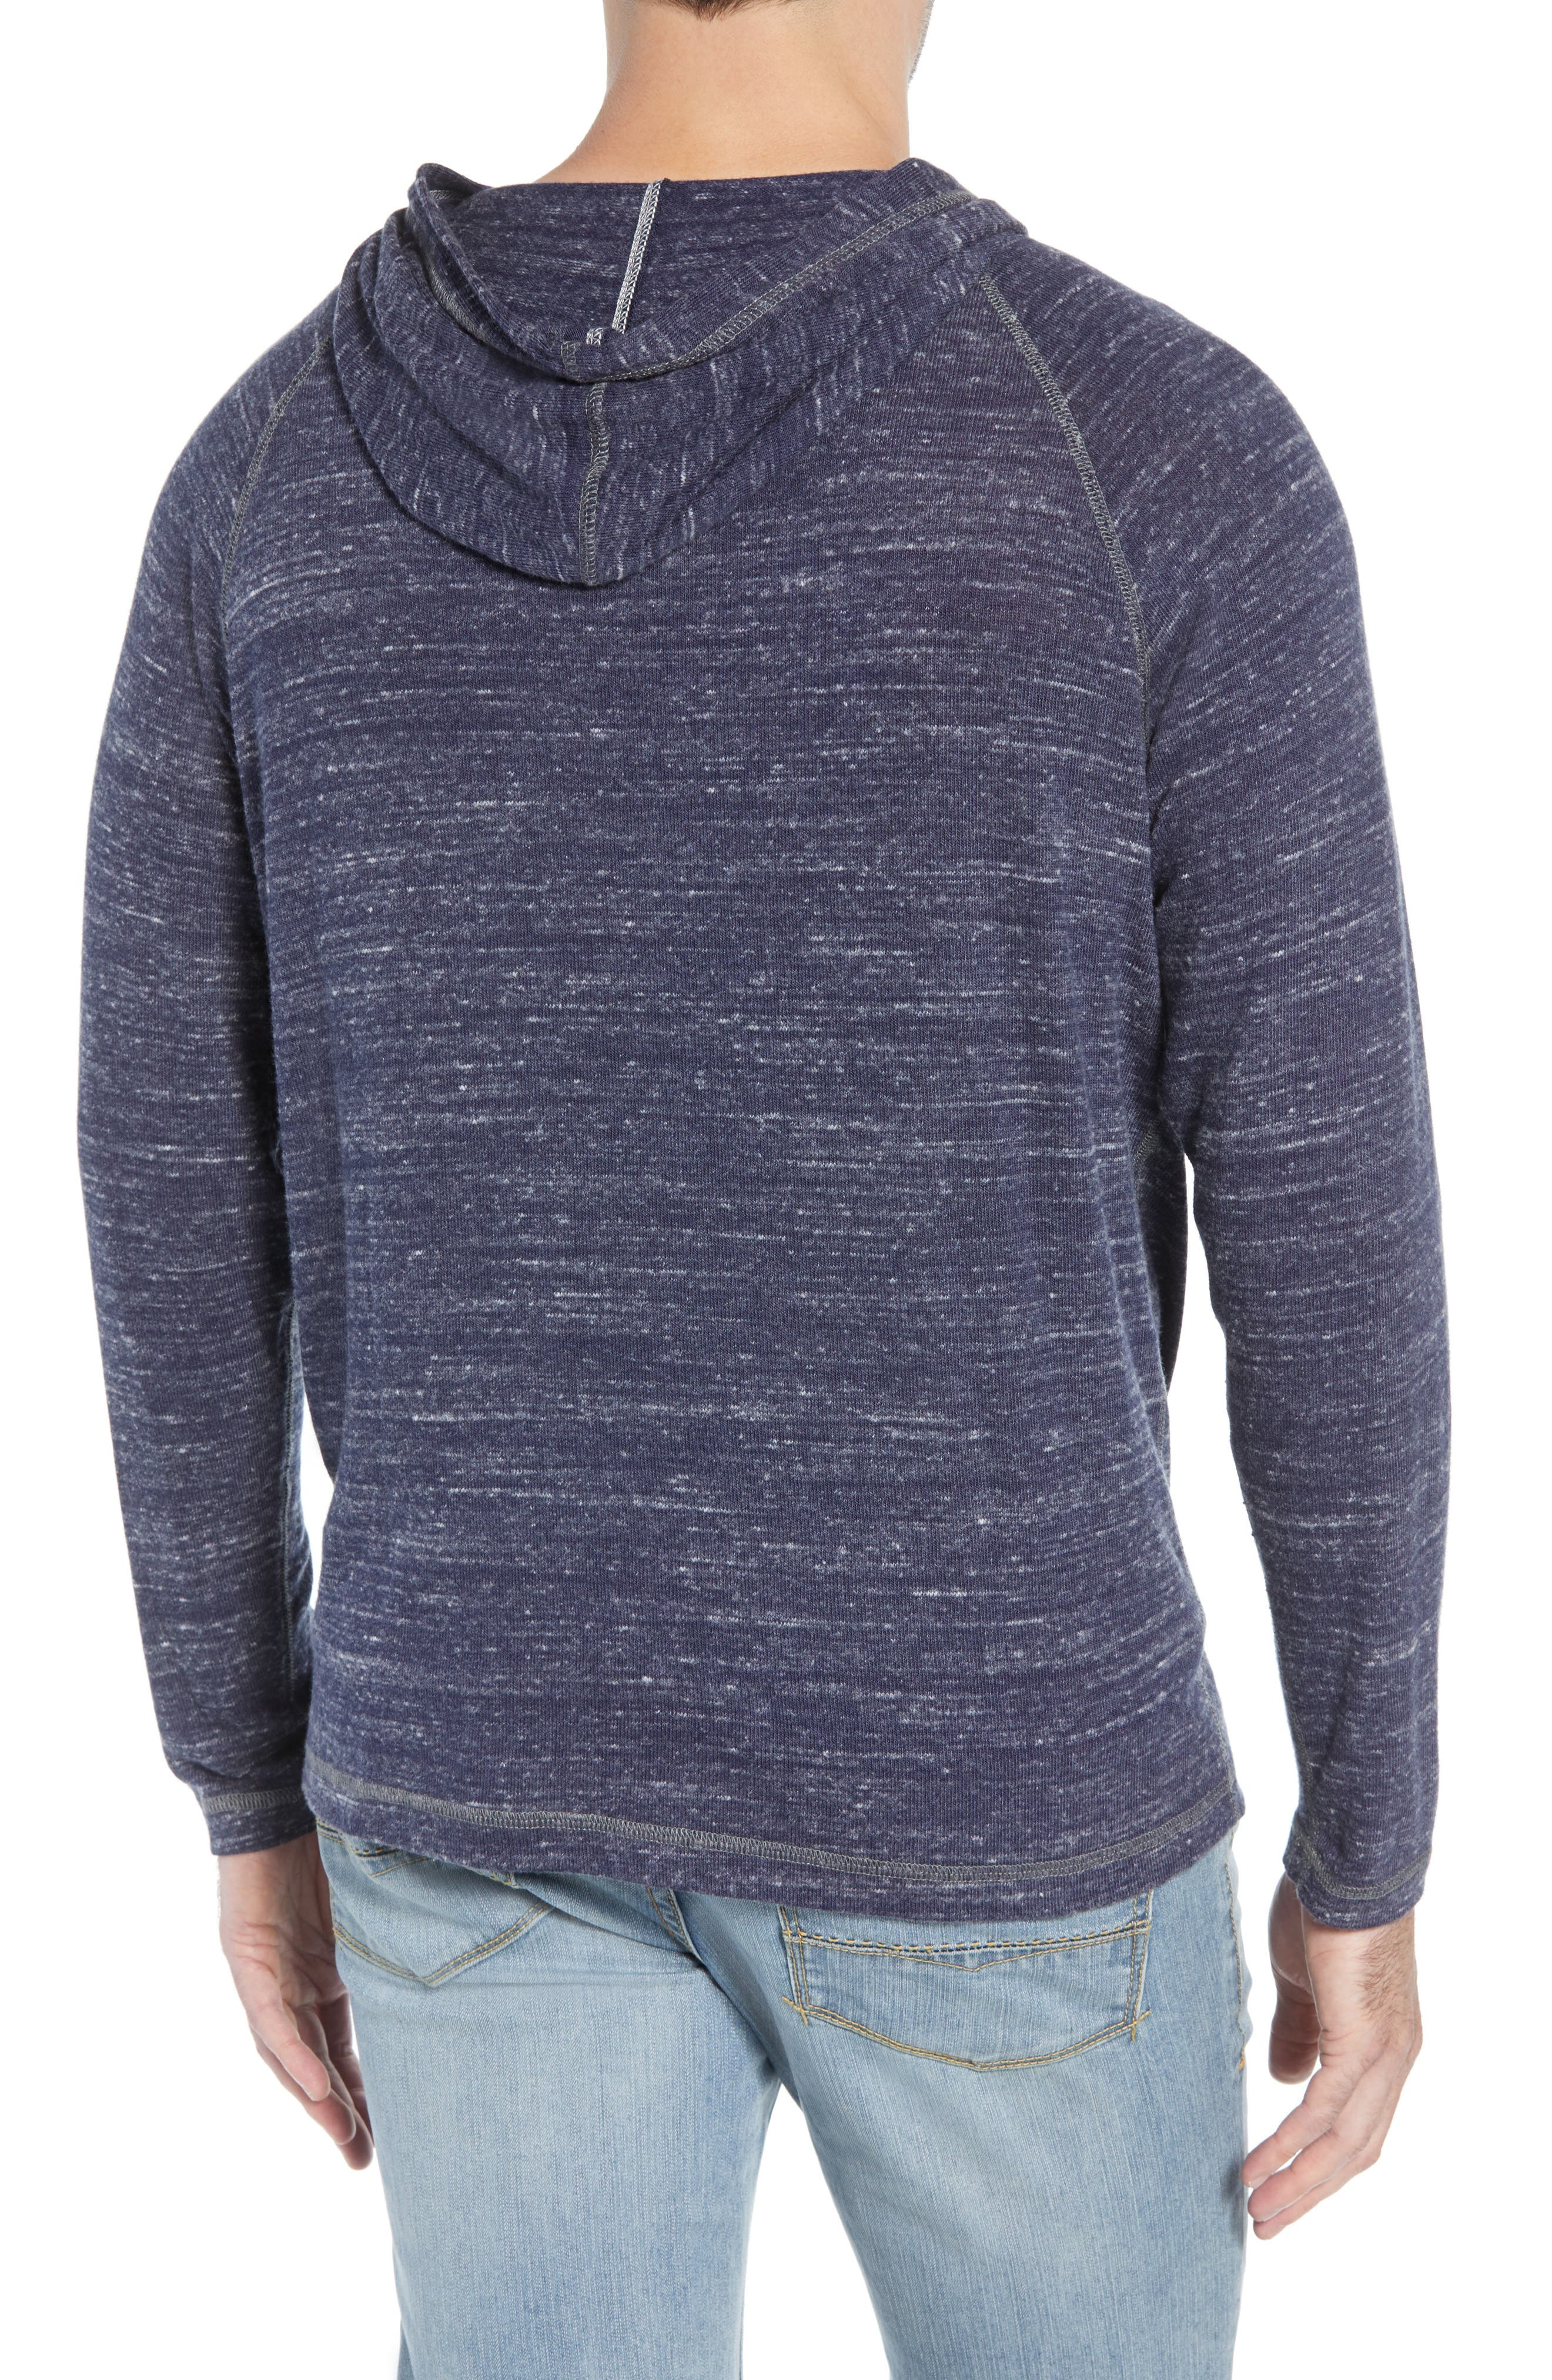 Leeward Cove Regular Fit Hoodie,                             Alternate thumbnail 2, color,                             OCEAN DEEP HEATHER